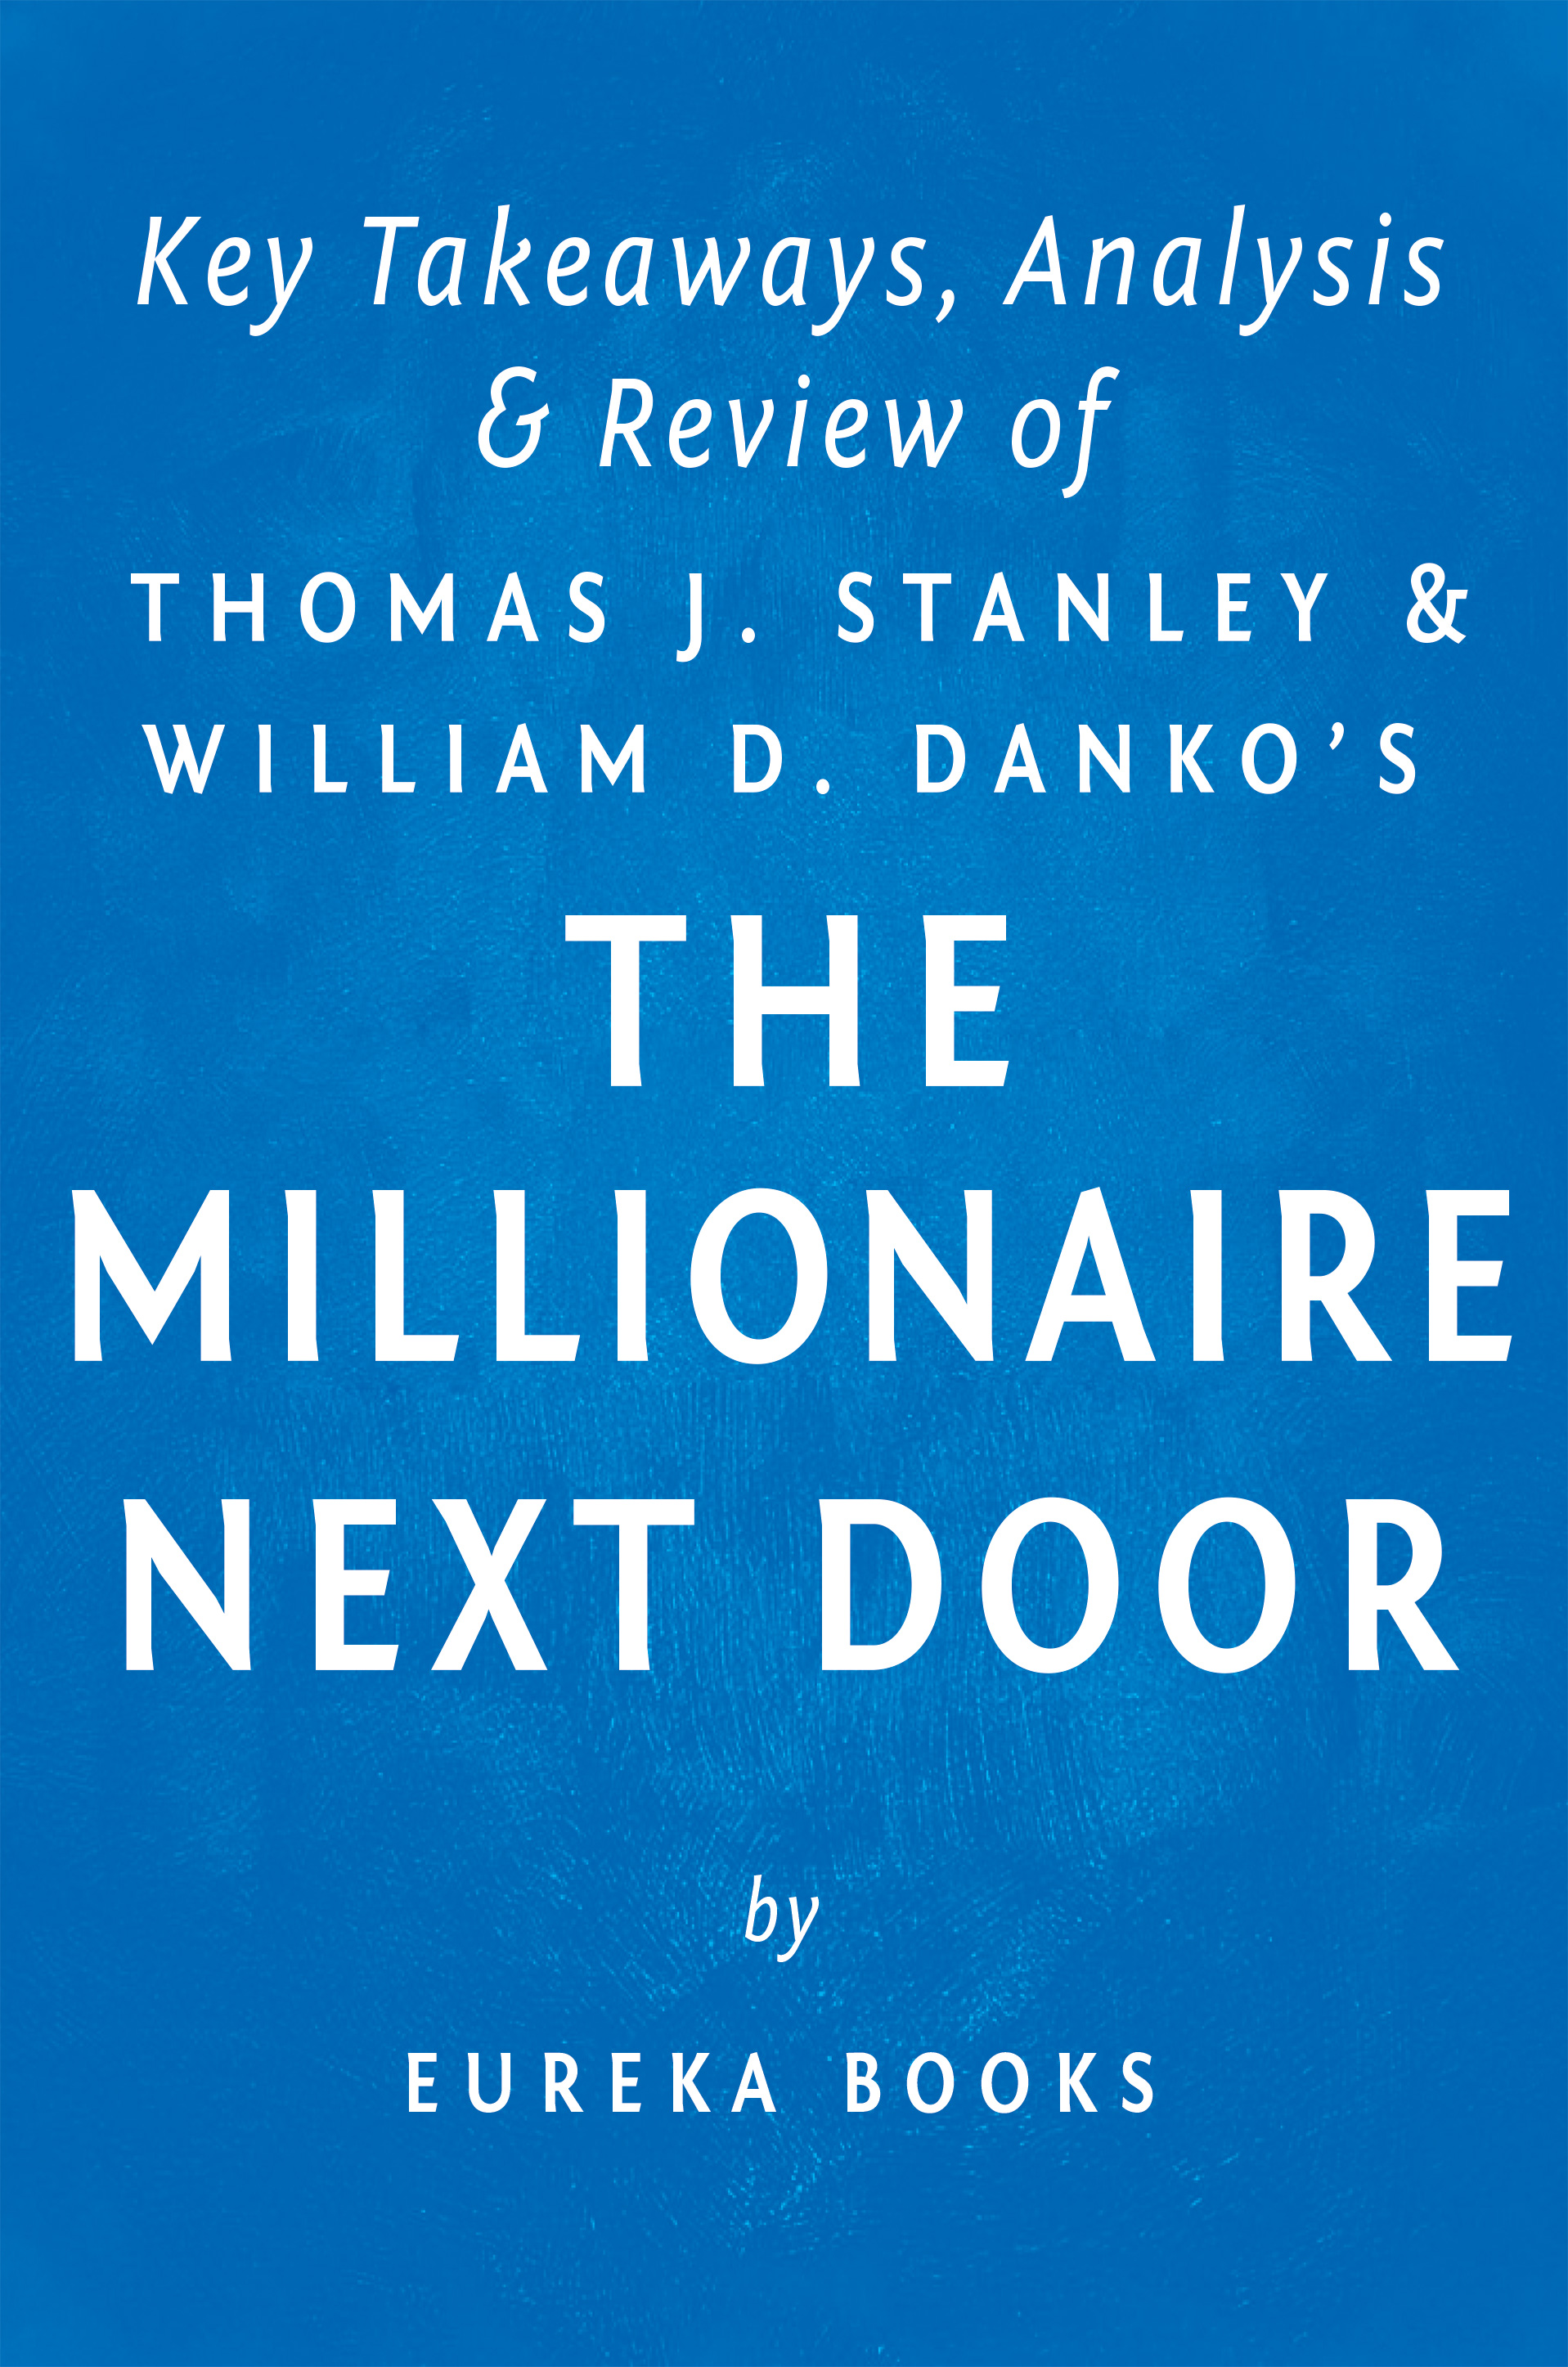 The Millionaire Next Door: by Thomas J. Stanley and William D. Danko | Key Takeaways, Analysis & Review